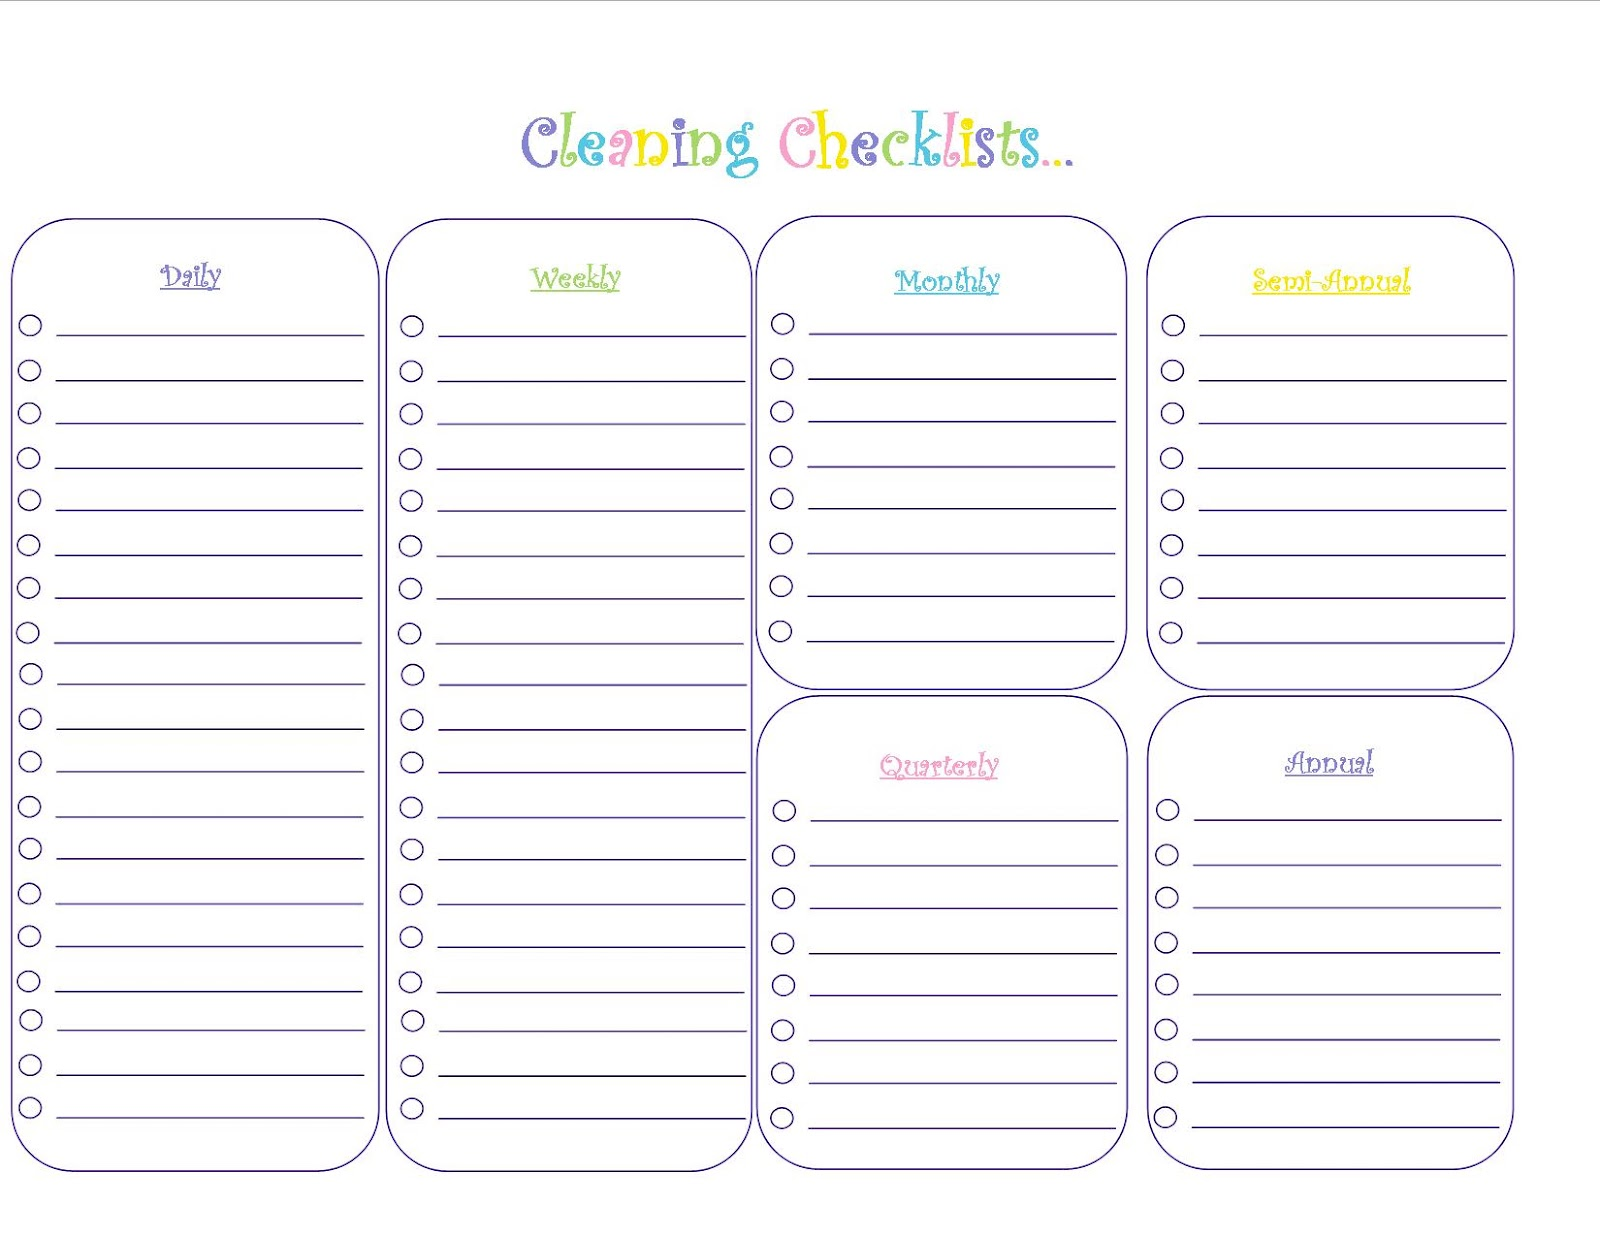 Doc1070602 Simple Checklist Template 50 Printable To Do List – Simple Checklist Template